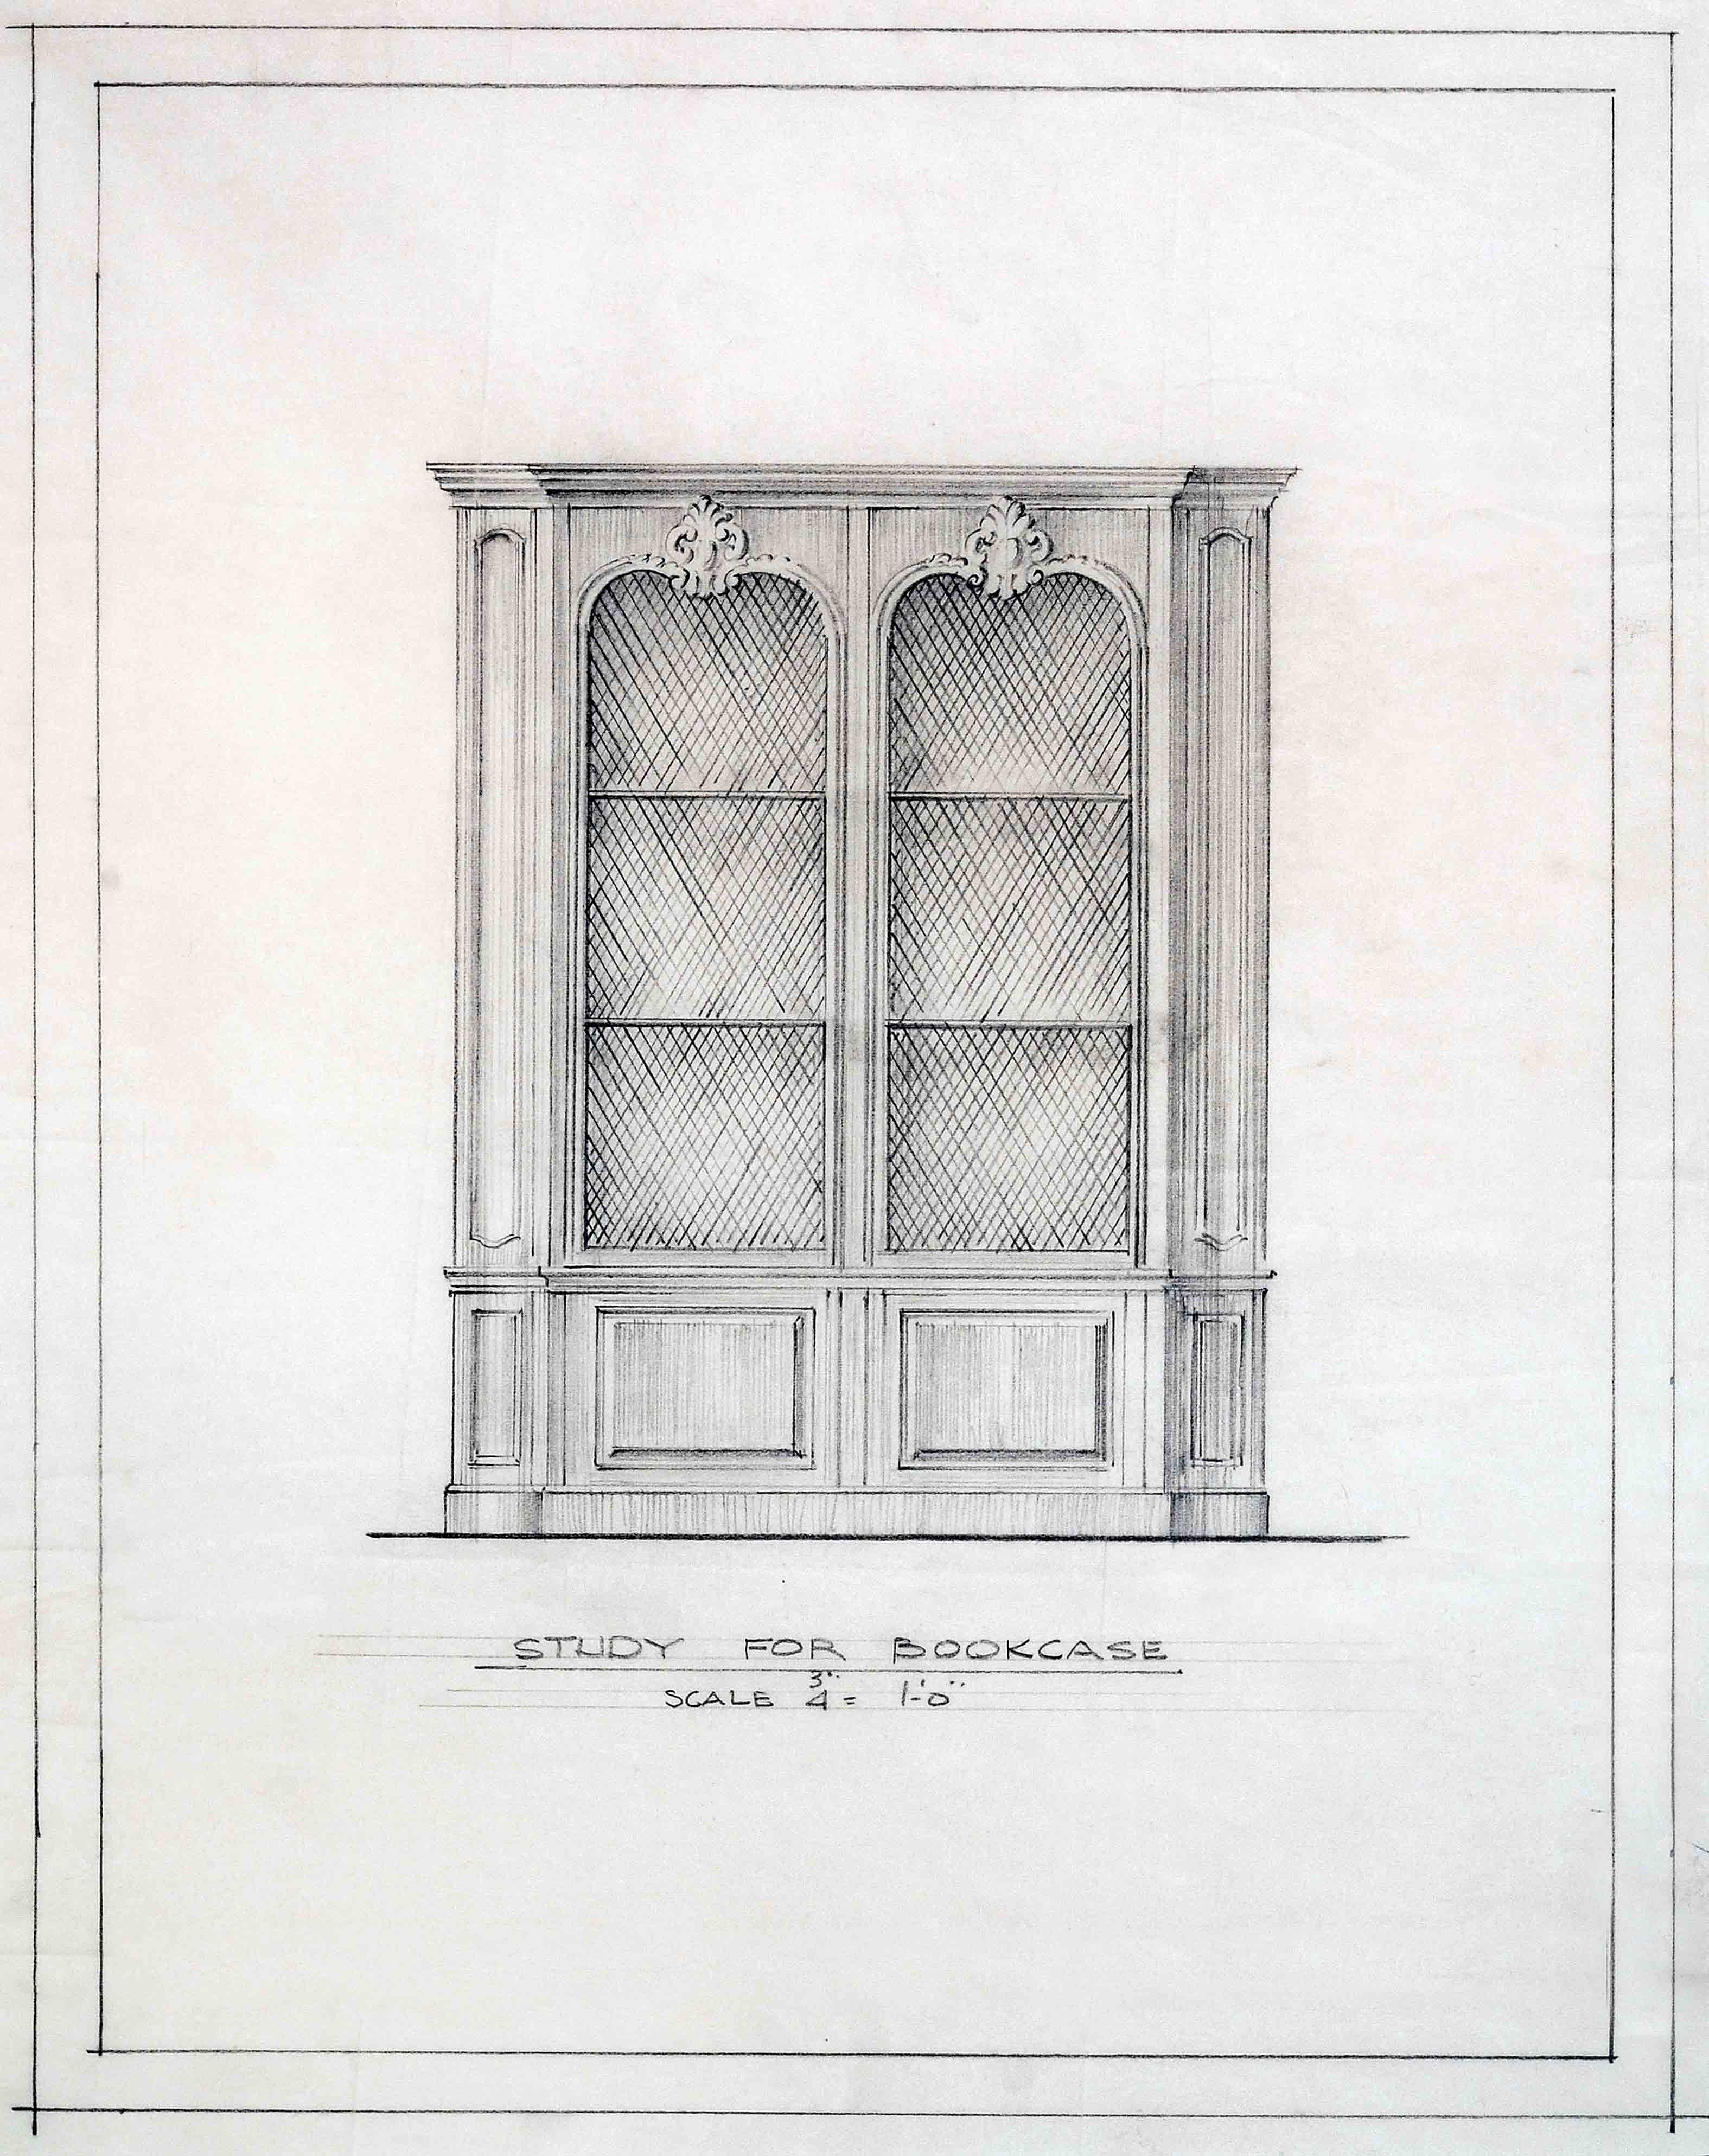 Frederic Rhinelander King study for bookcase design